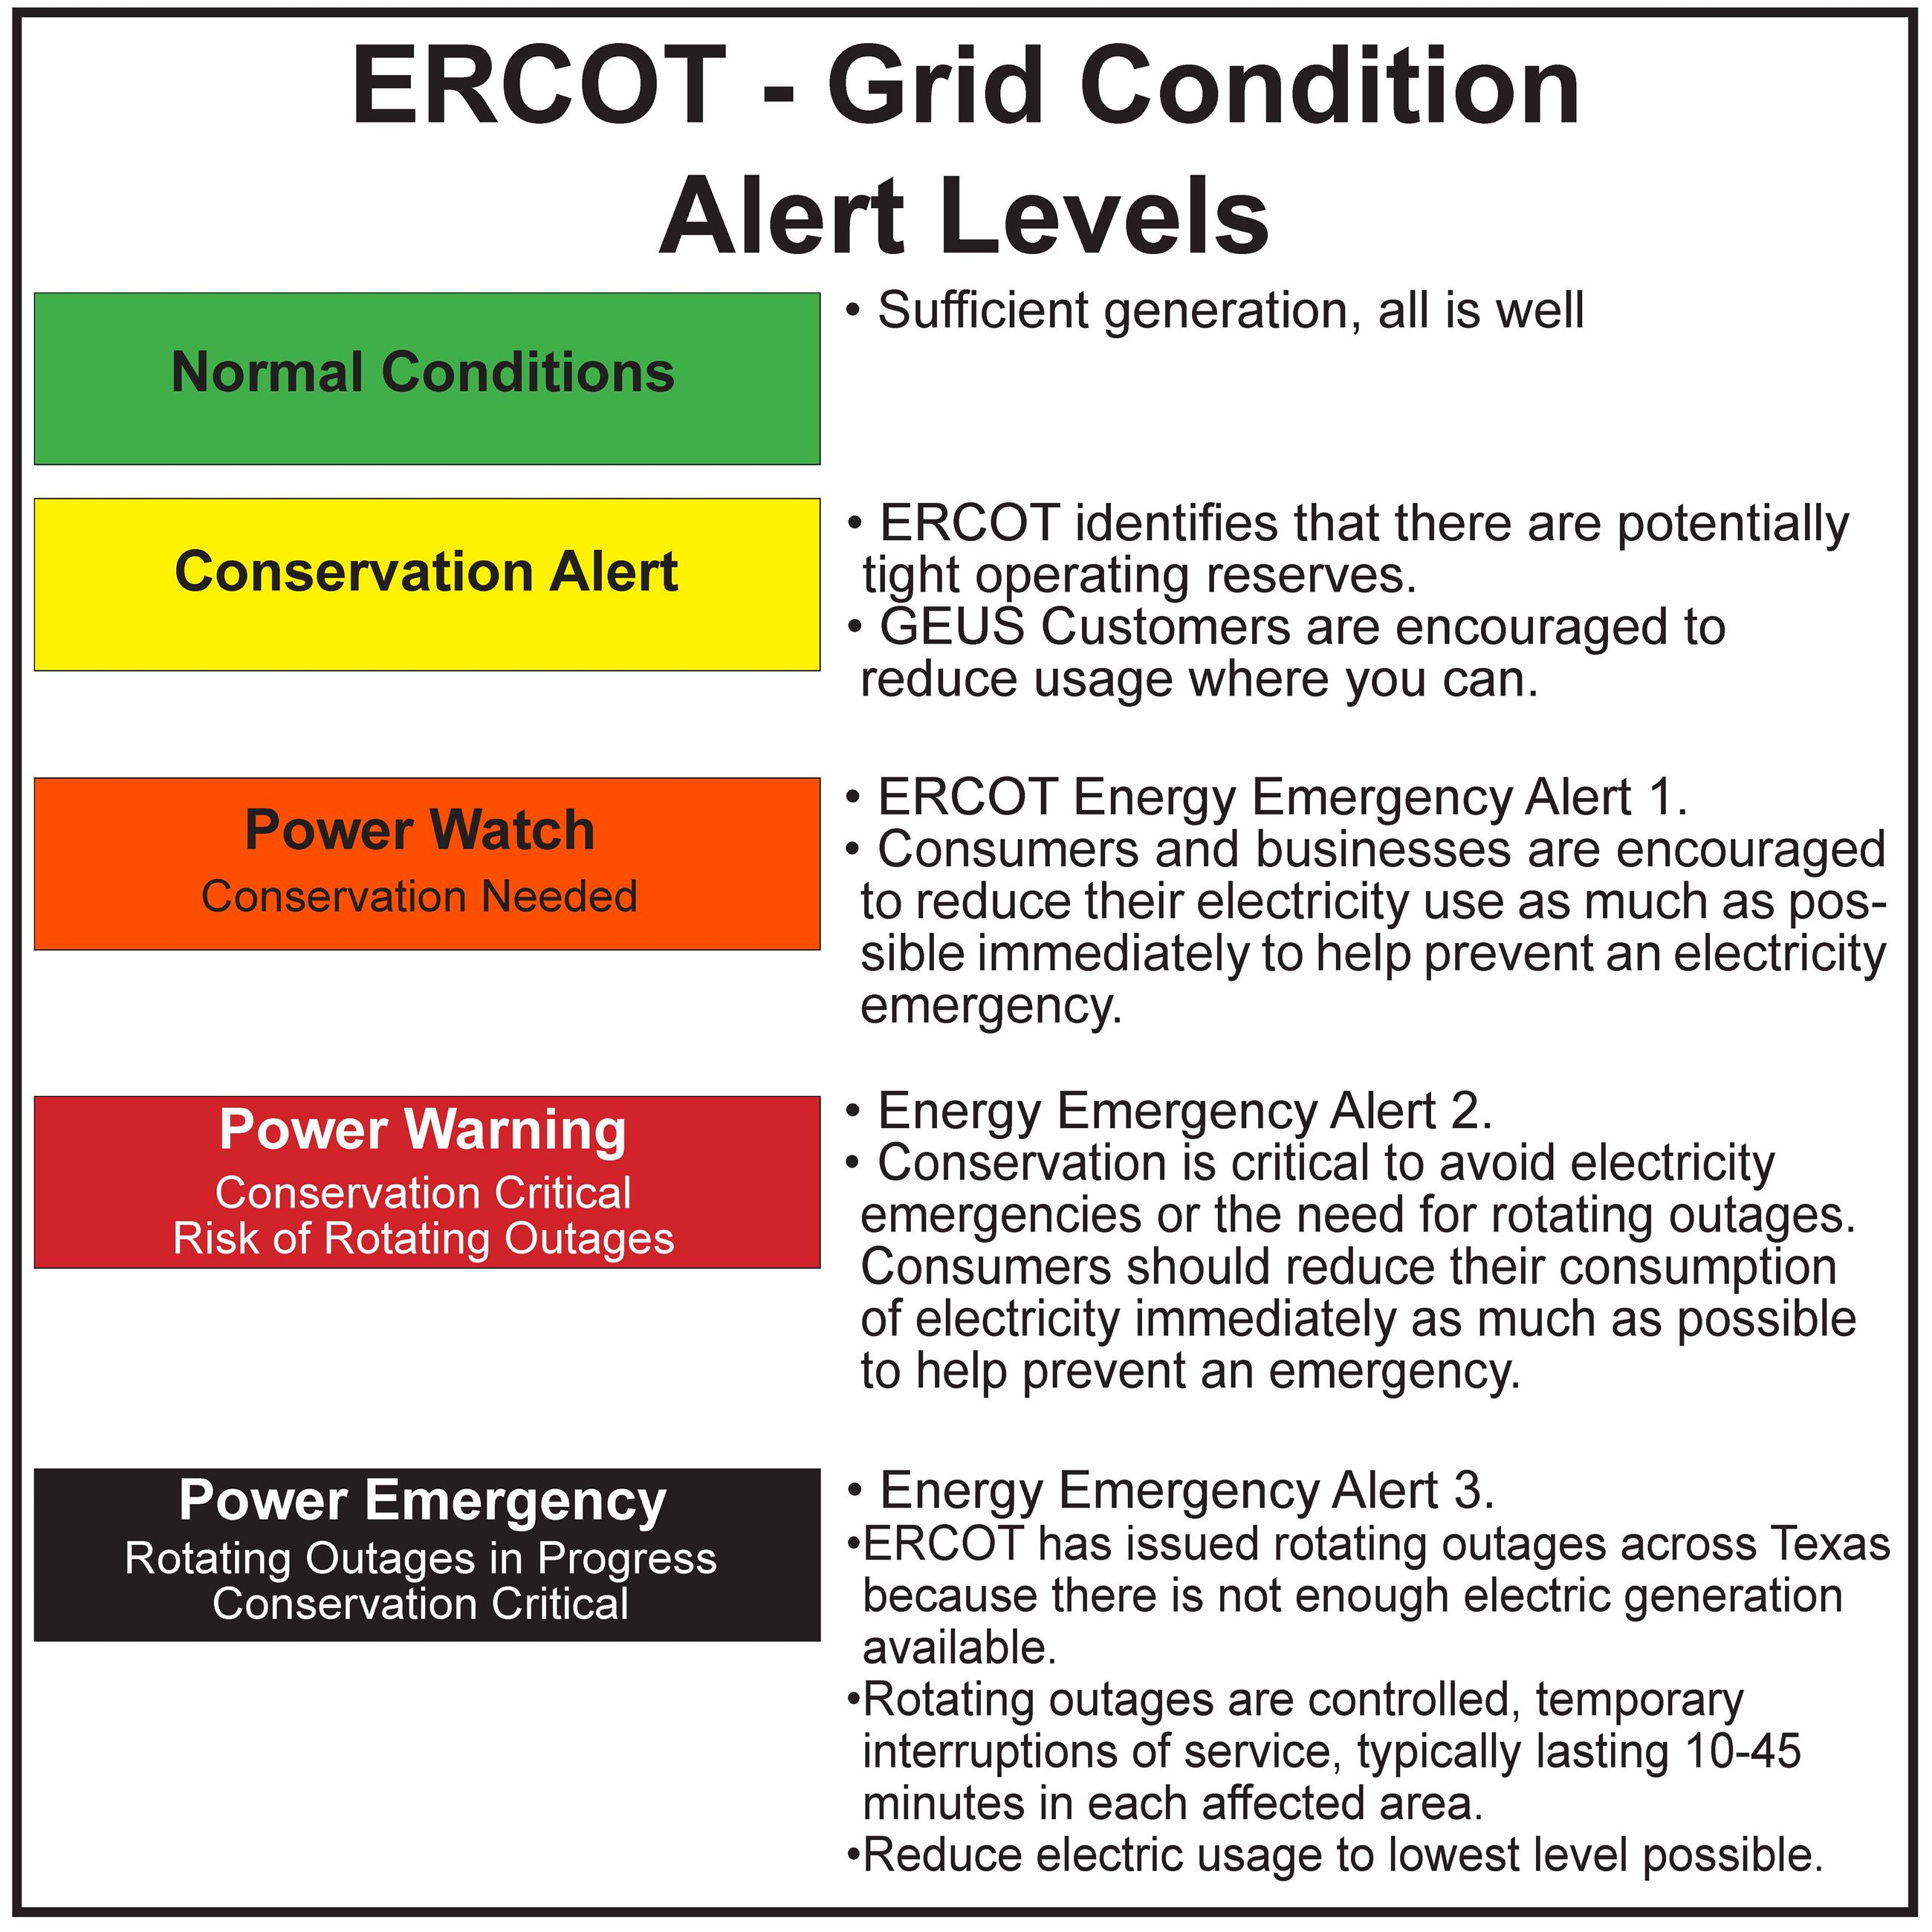 ERCOT Grid Condition Alert Levels